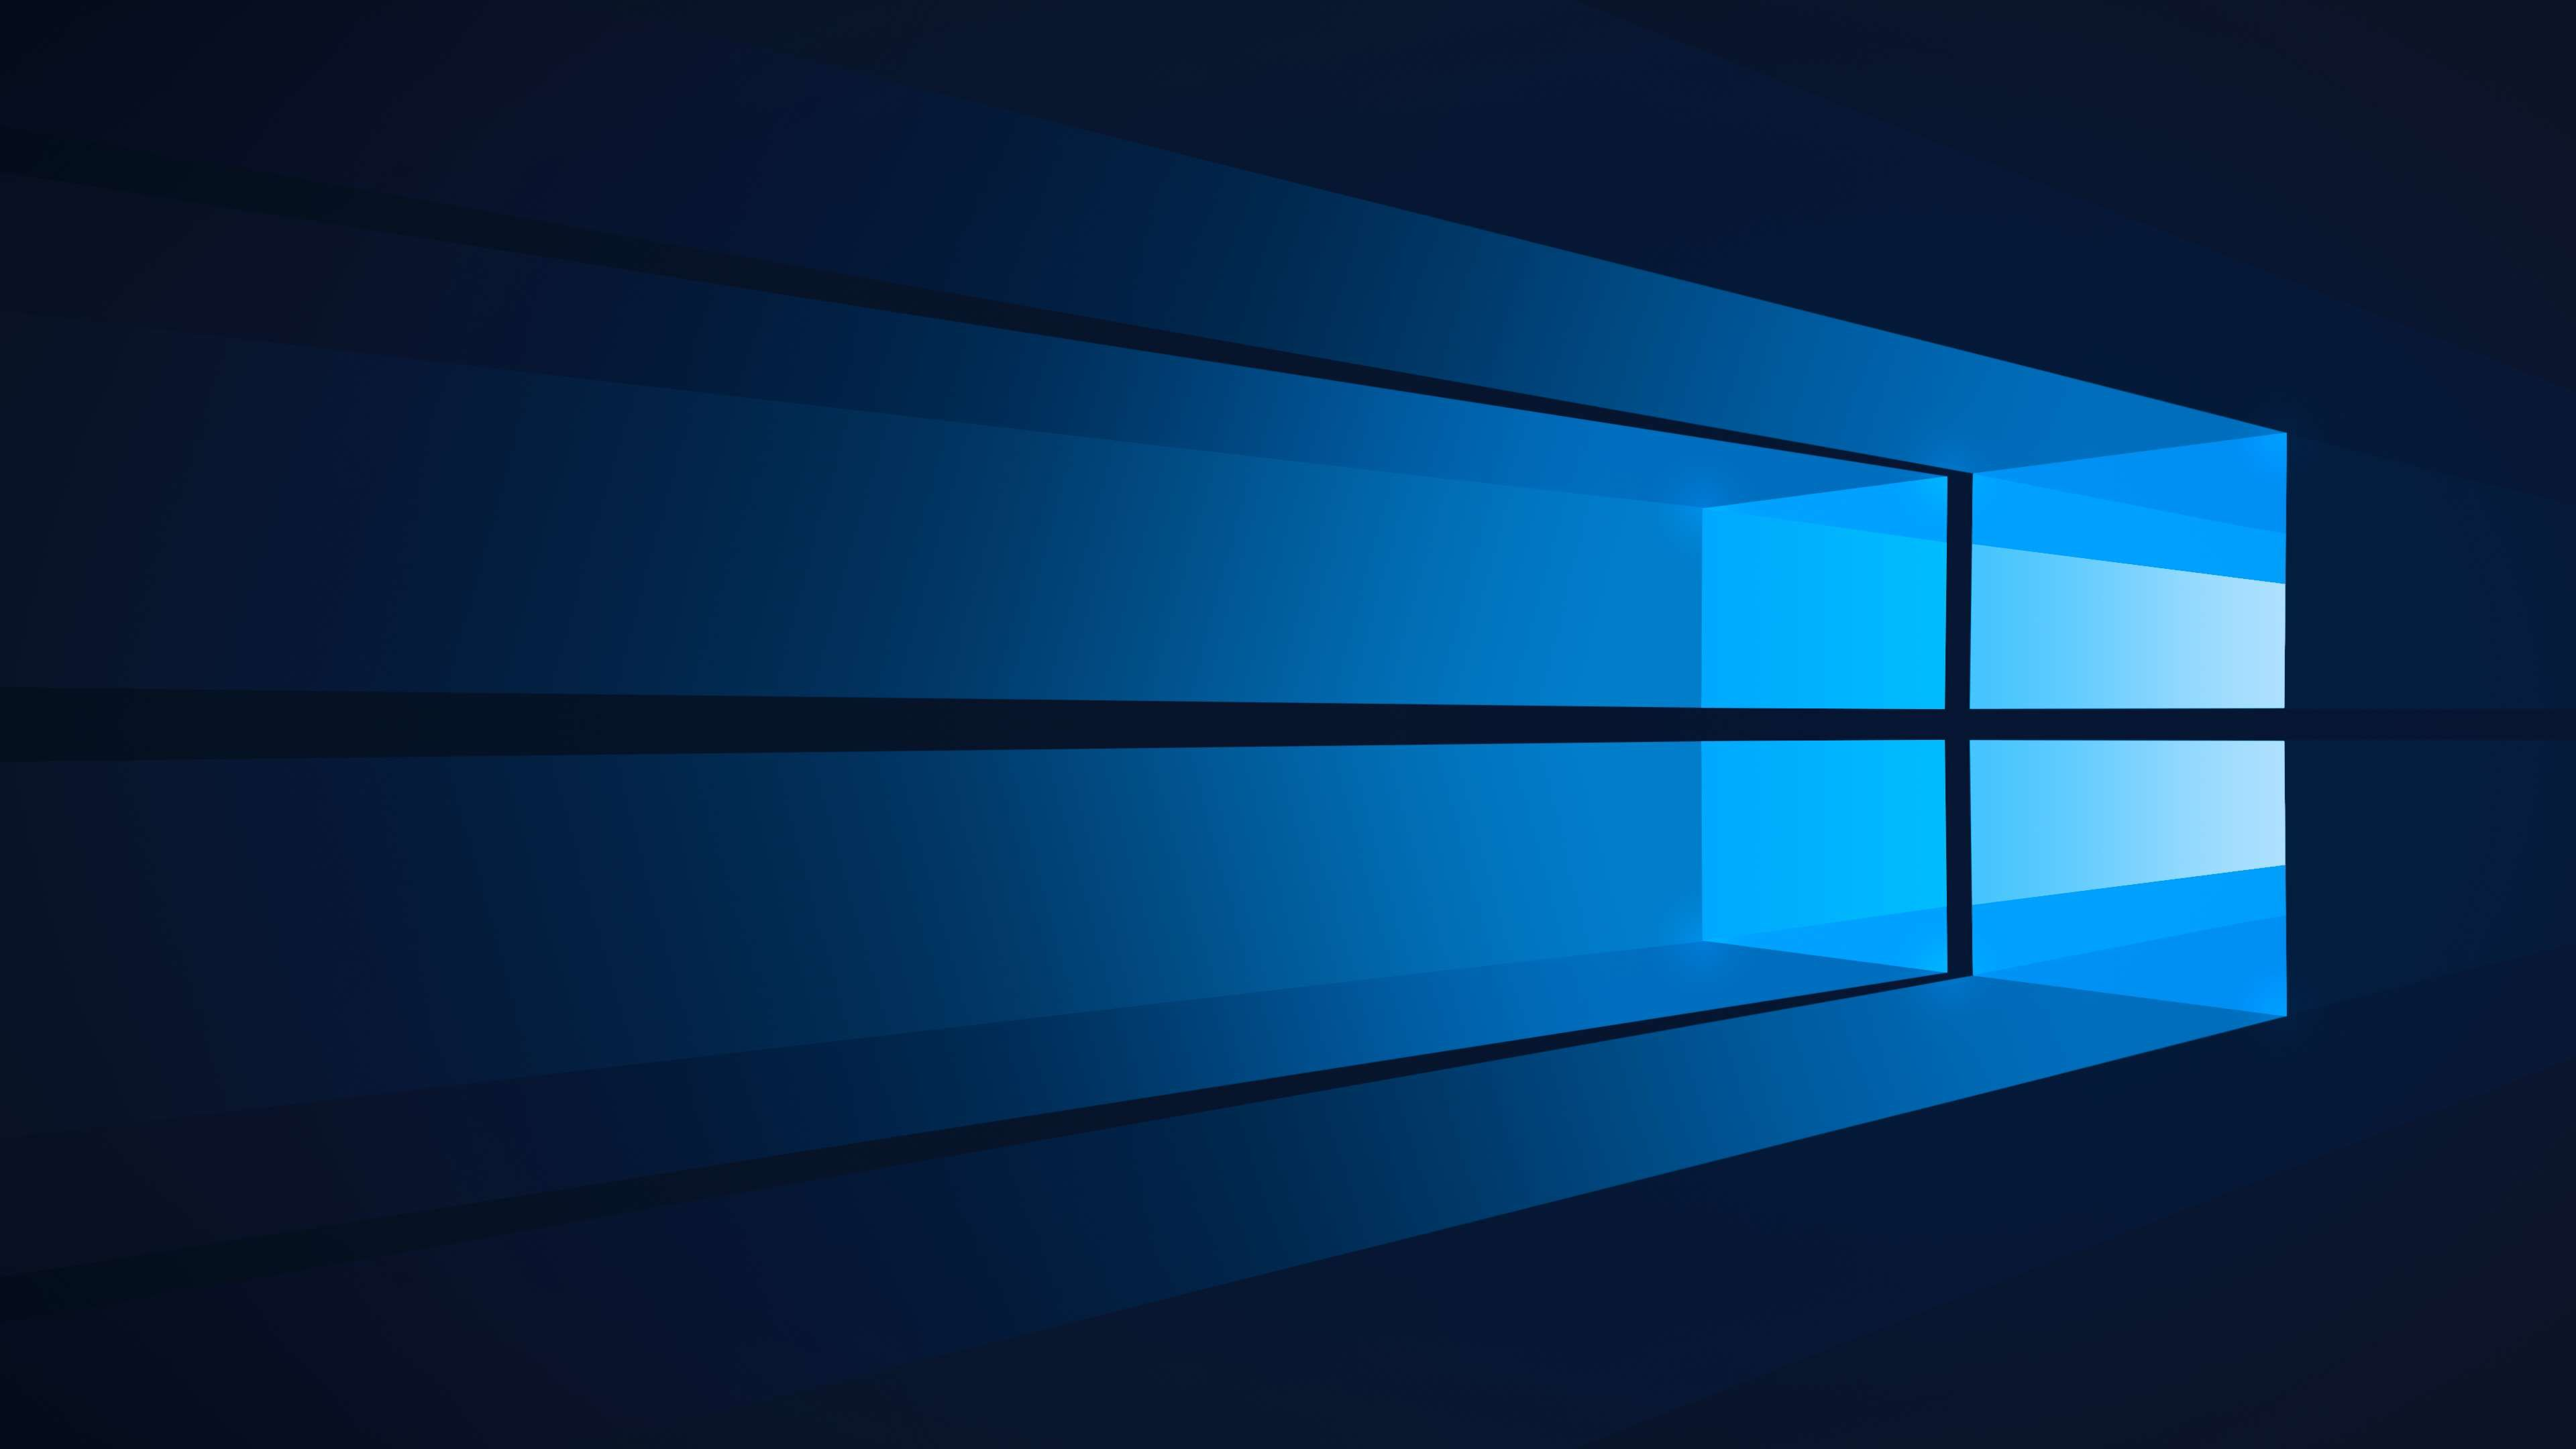 Blue Dark Blue Flat Windows Windows 10 Windows Wallpaper Desktop Wallpapers Backgrounds Windows 10